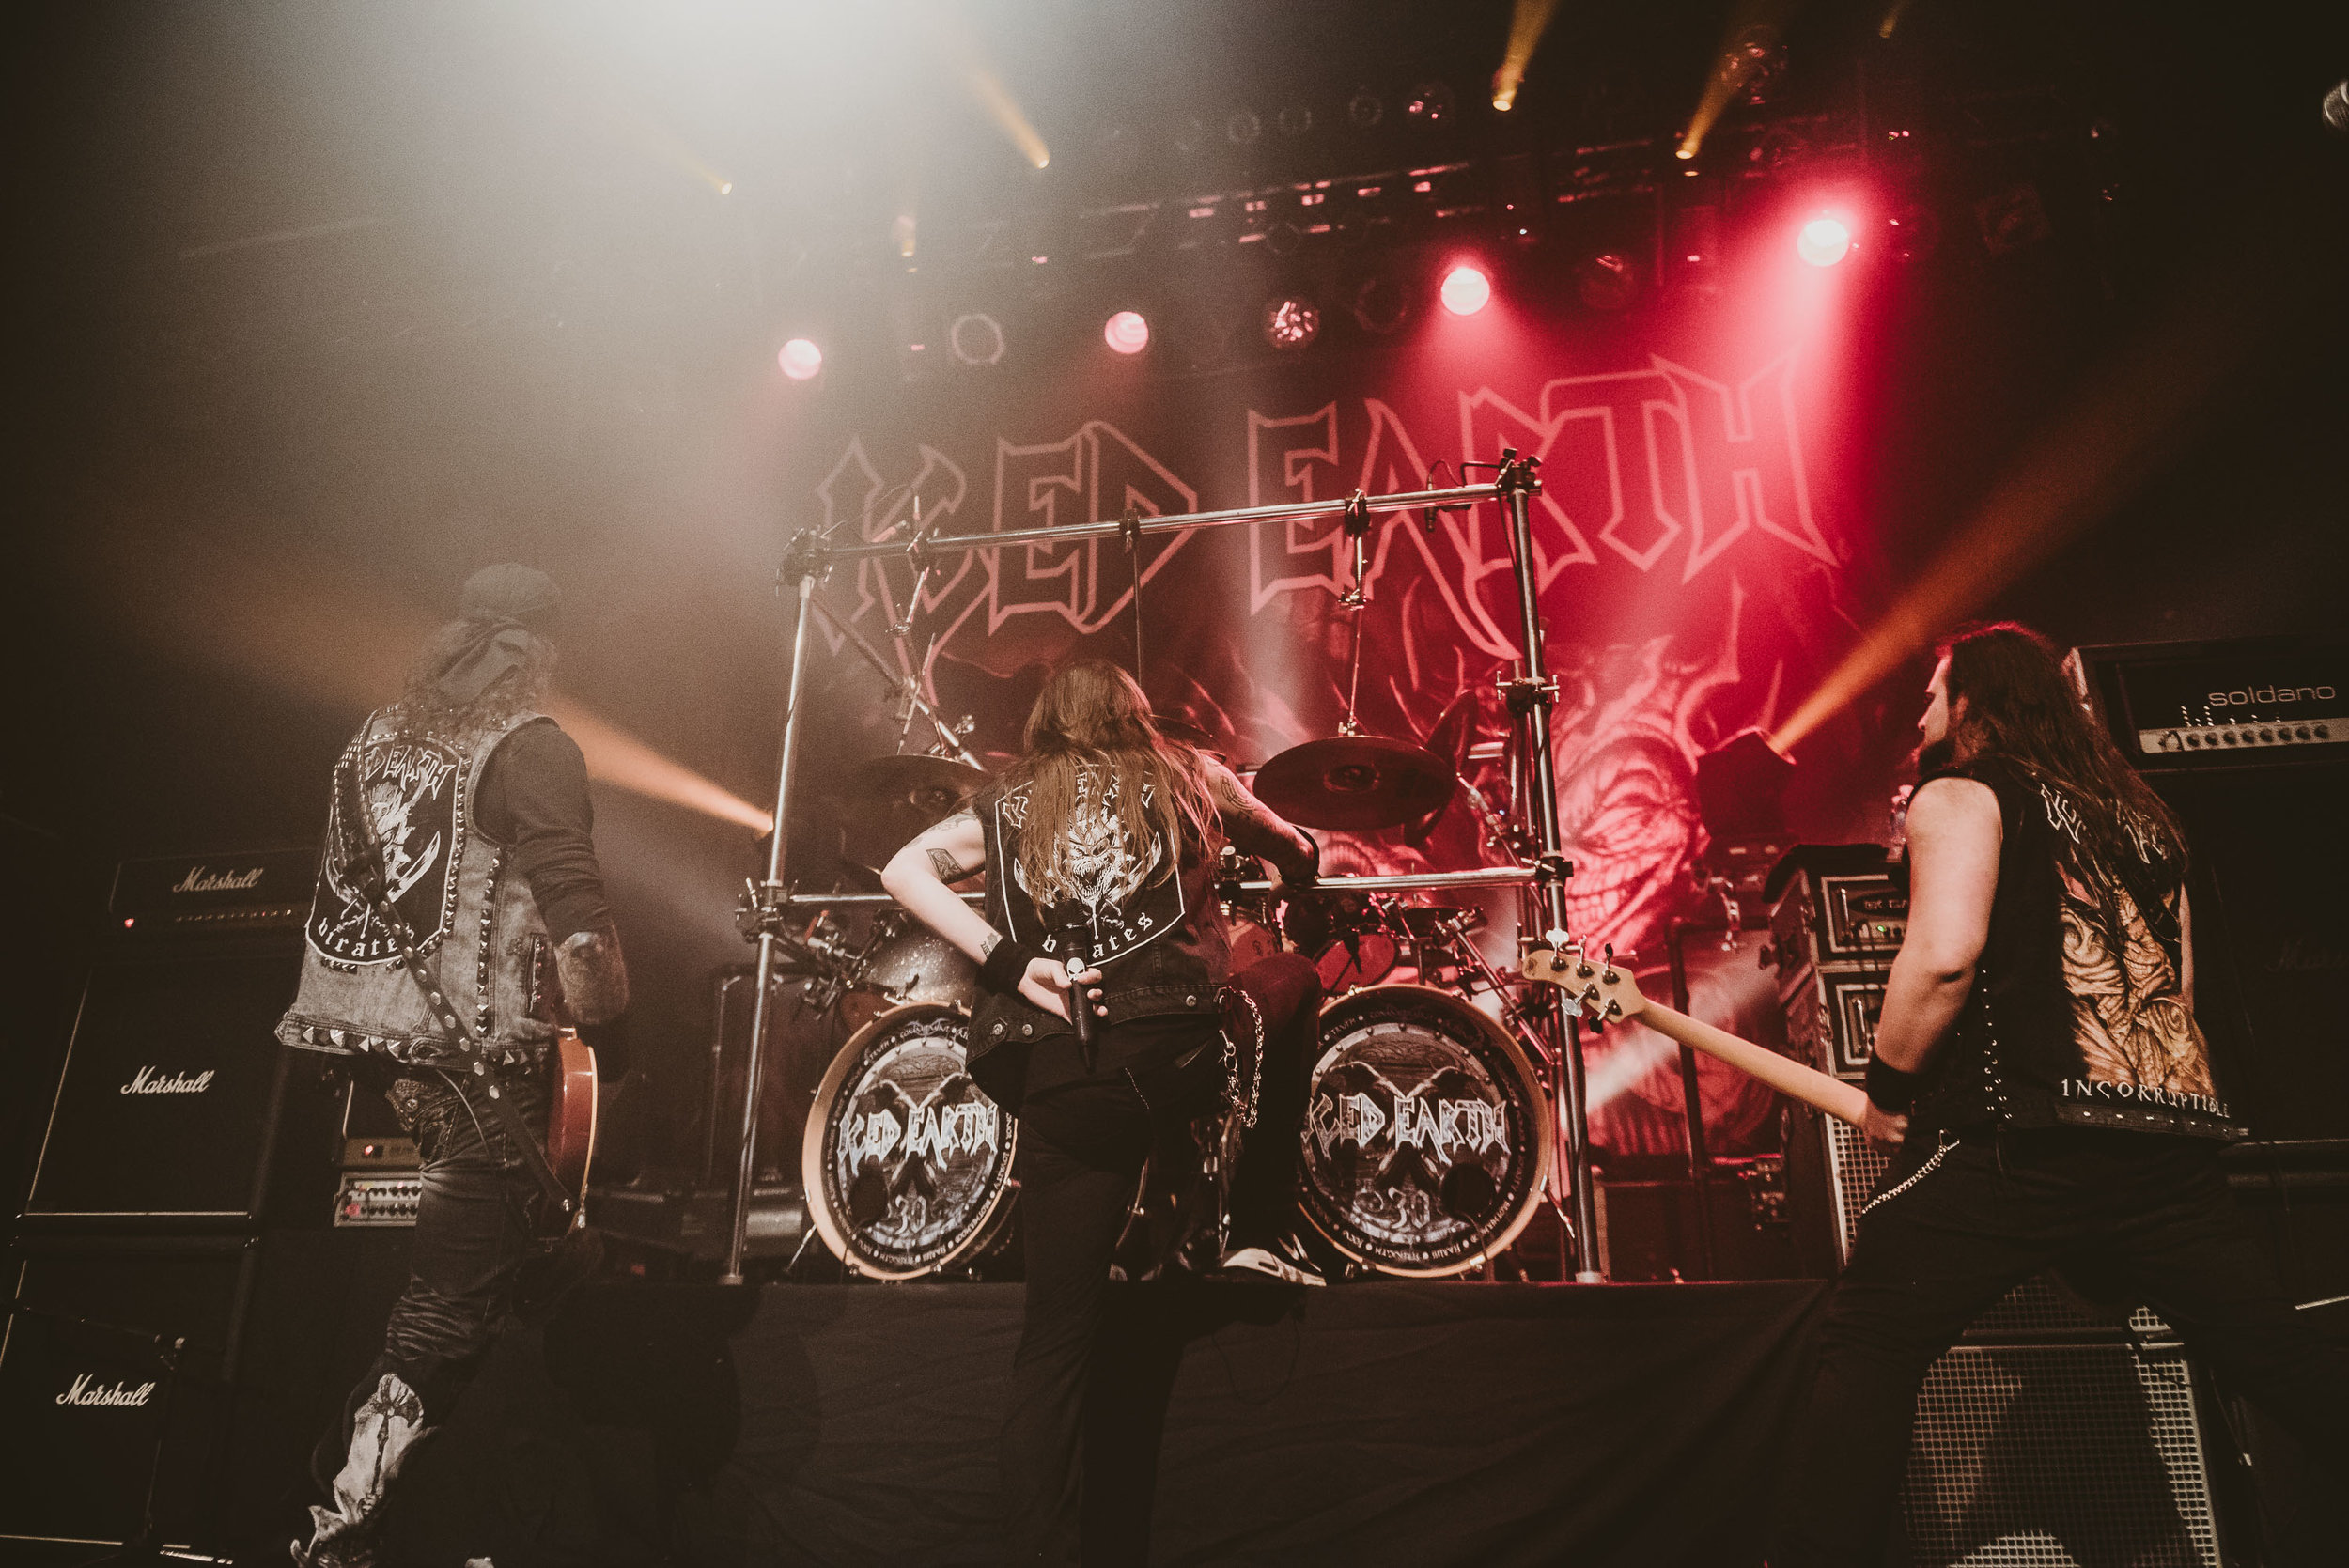 1_Iced_Earth-Rickshaw_Theatre-Timothy_Nguyen-20180304 (11 of 20).jpg